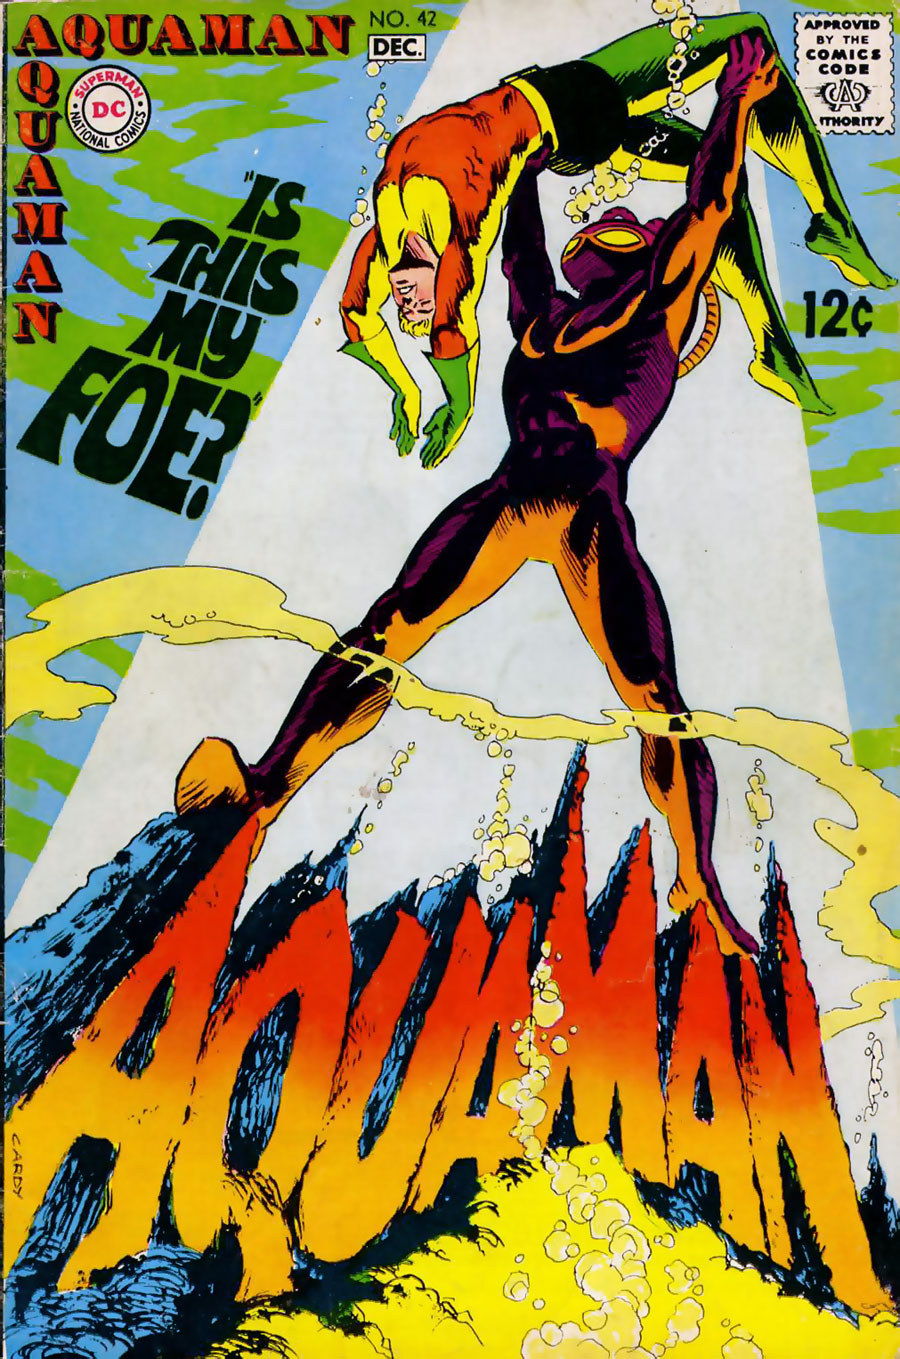 Aquaman #42 cover by Nick Cardy